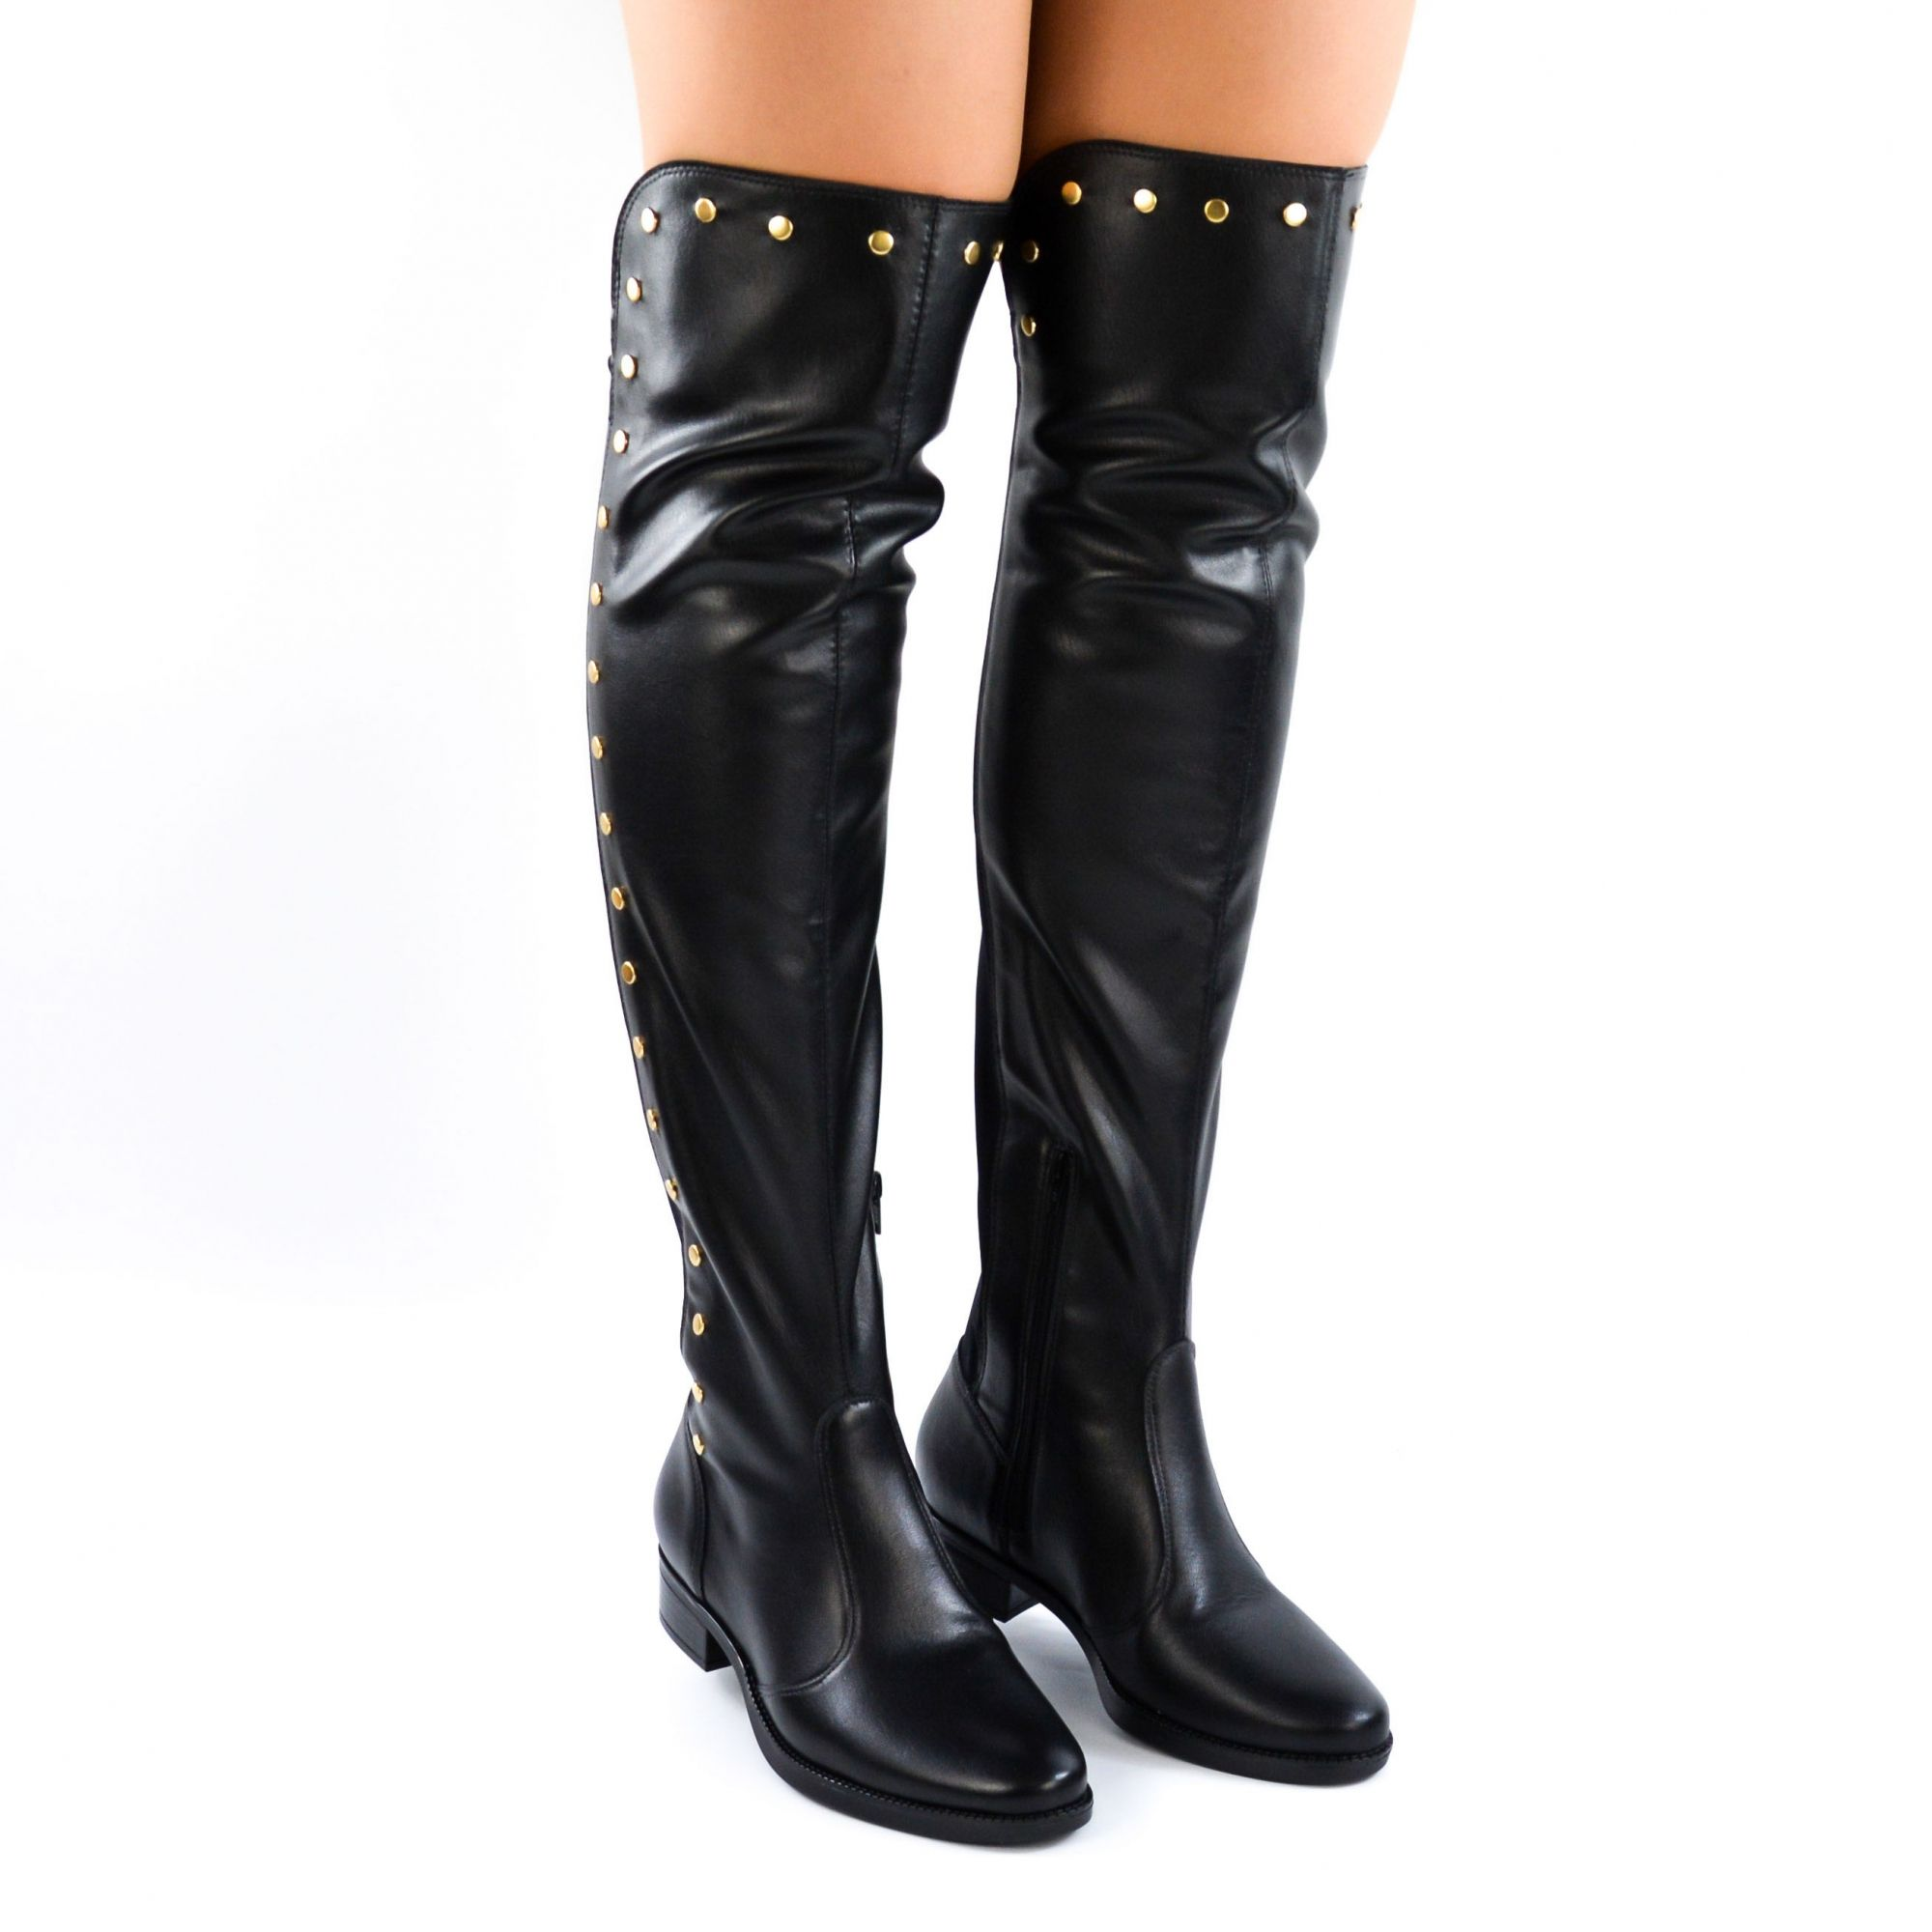 BOTA OVER THE KNEE VIZZANO 3050.116 - 017097